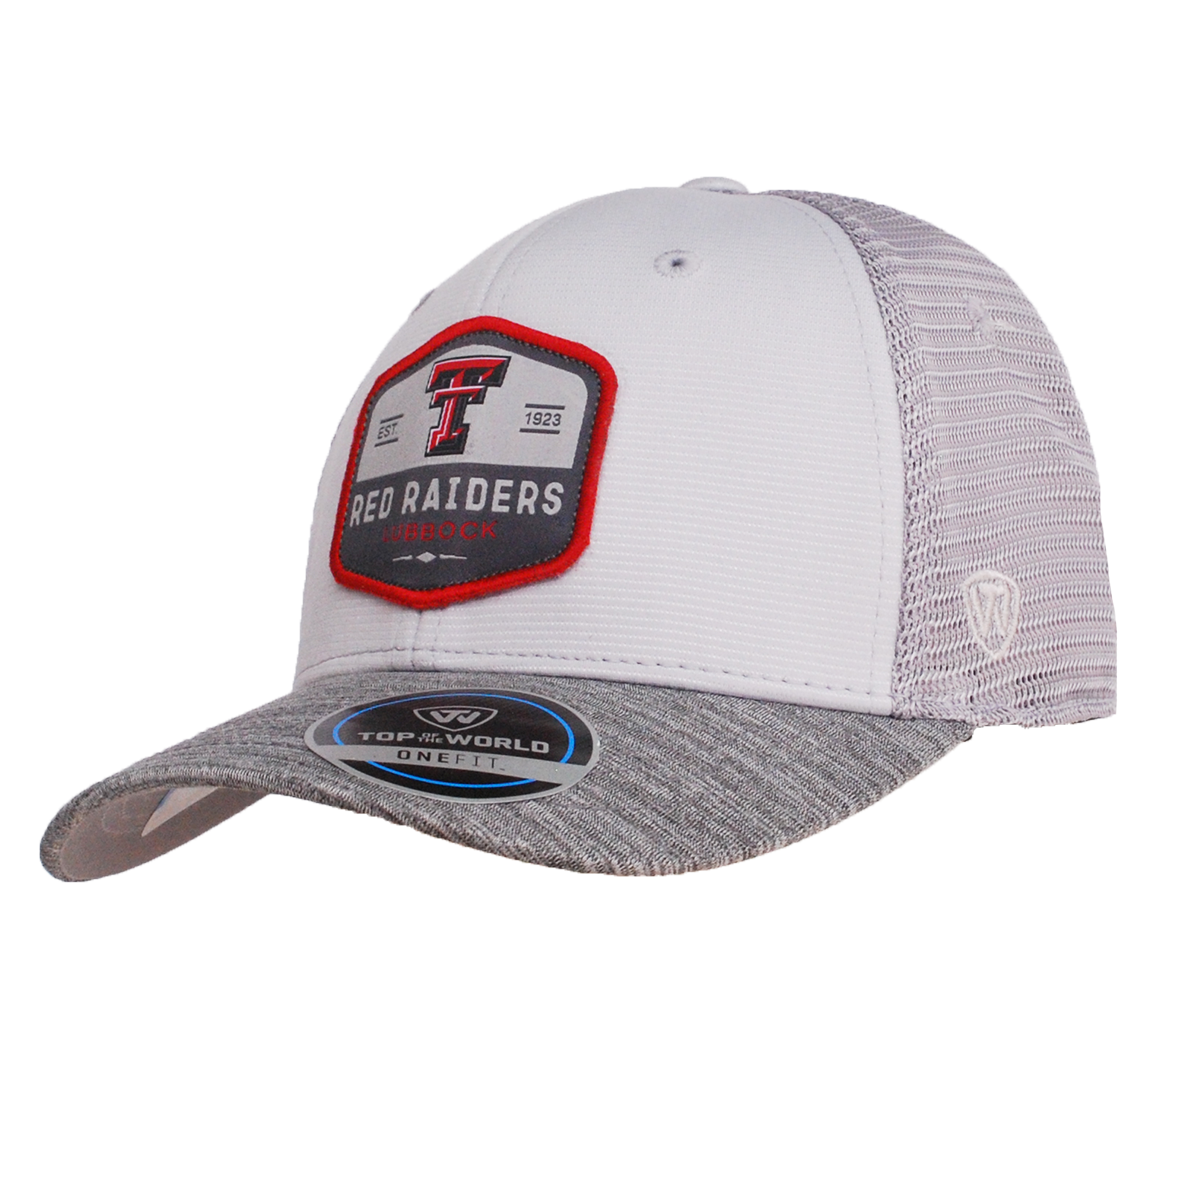 f3b95420924 Top of the World Hyjak One Fit Three Tone Grey Cap